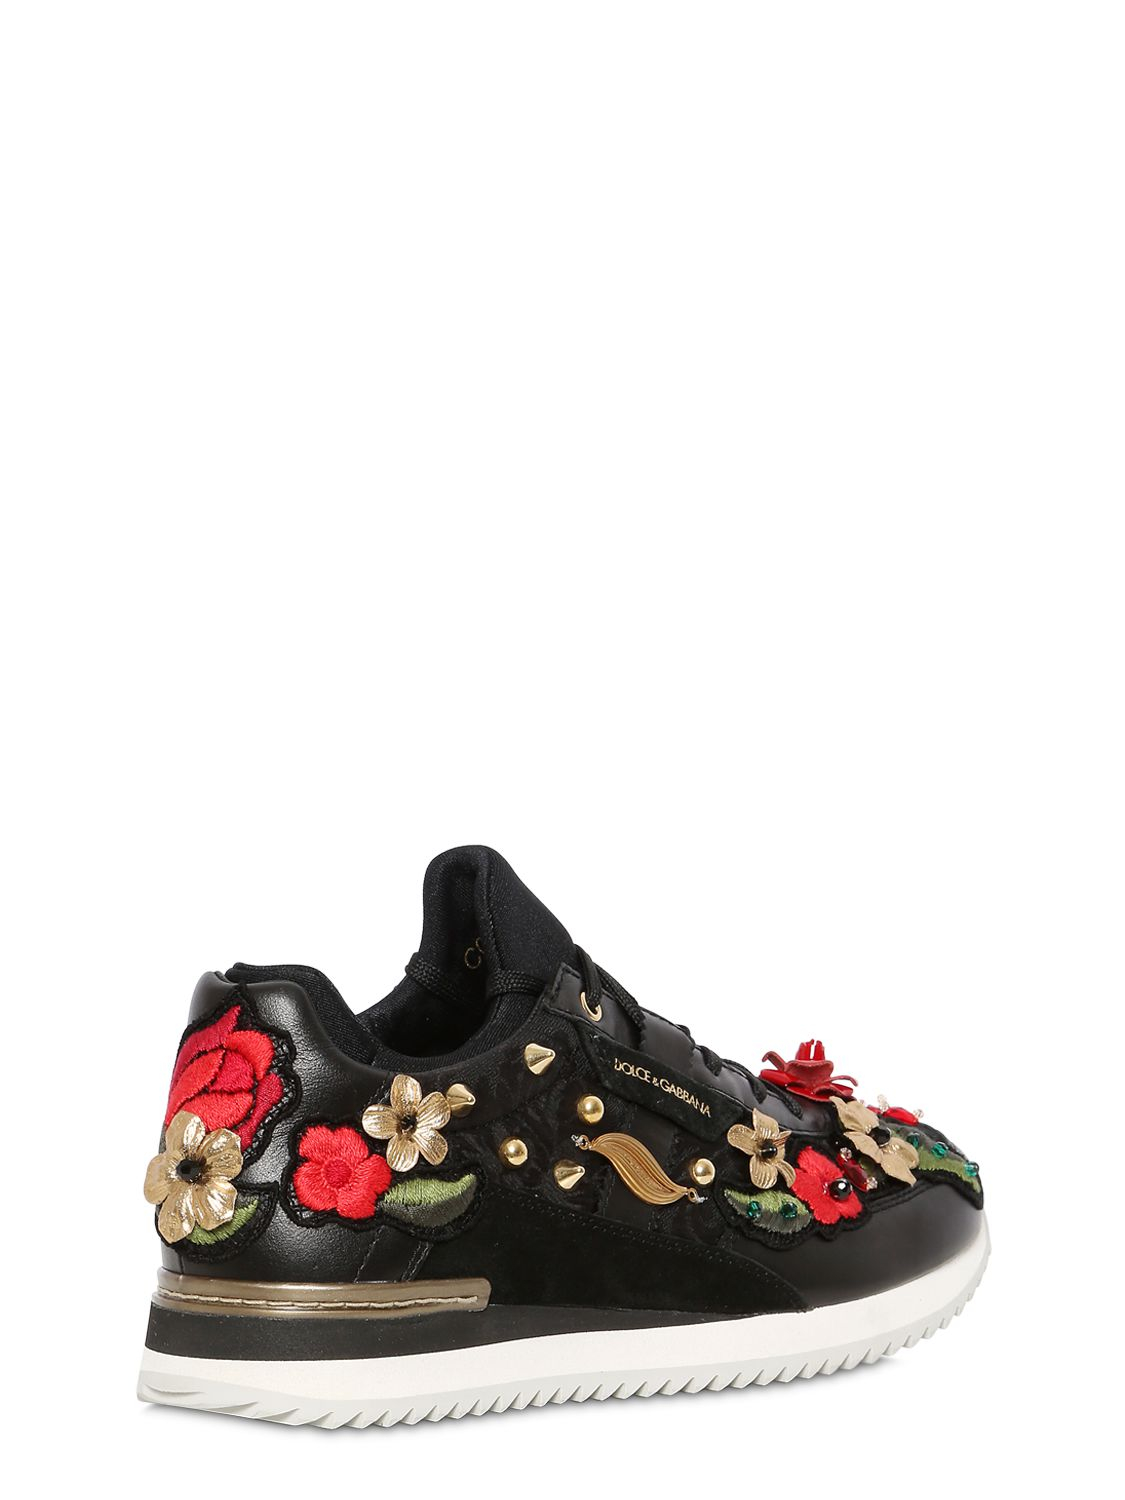 lyst dolce gabbana jacquard nappa leather sneakers in black. Black Bedroom Furniture Sets. Home Design Ideas